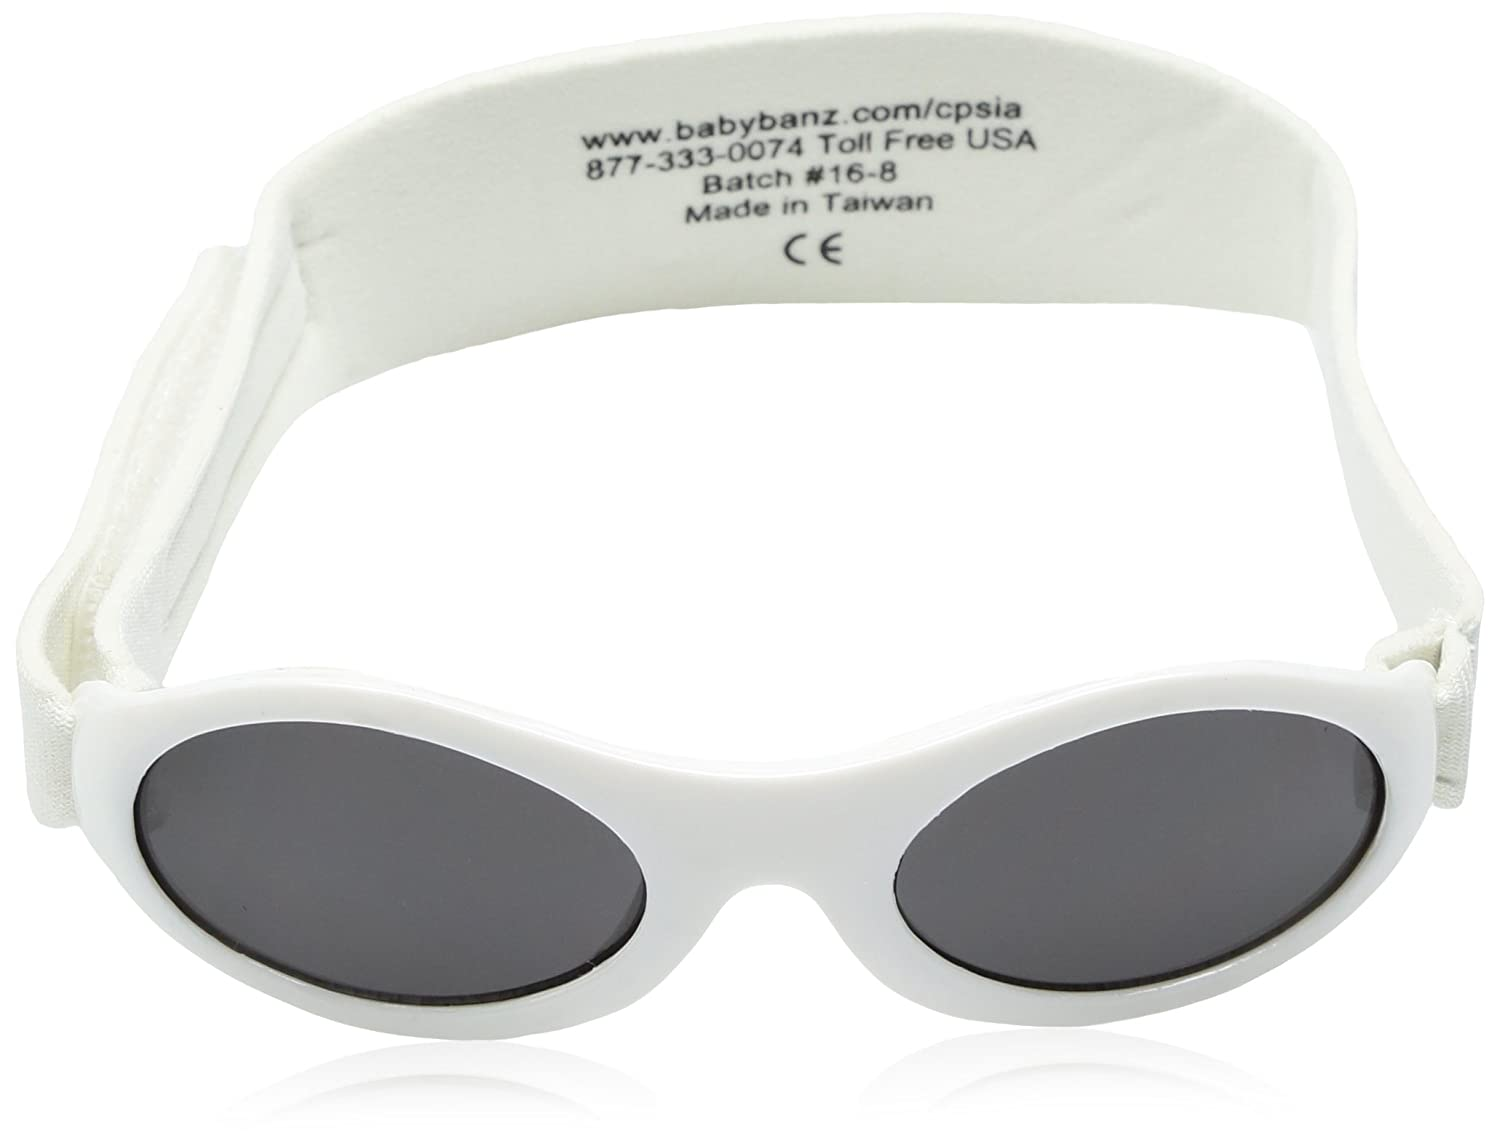 Baby Banz 01//AW weiss Baby Banz Wrap Sunglasses Lens Category 3 Lens Mirrored